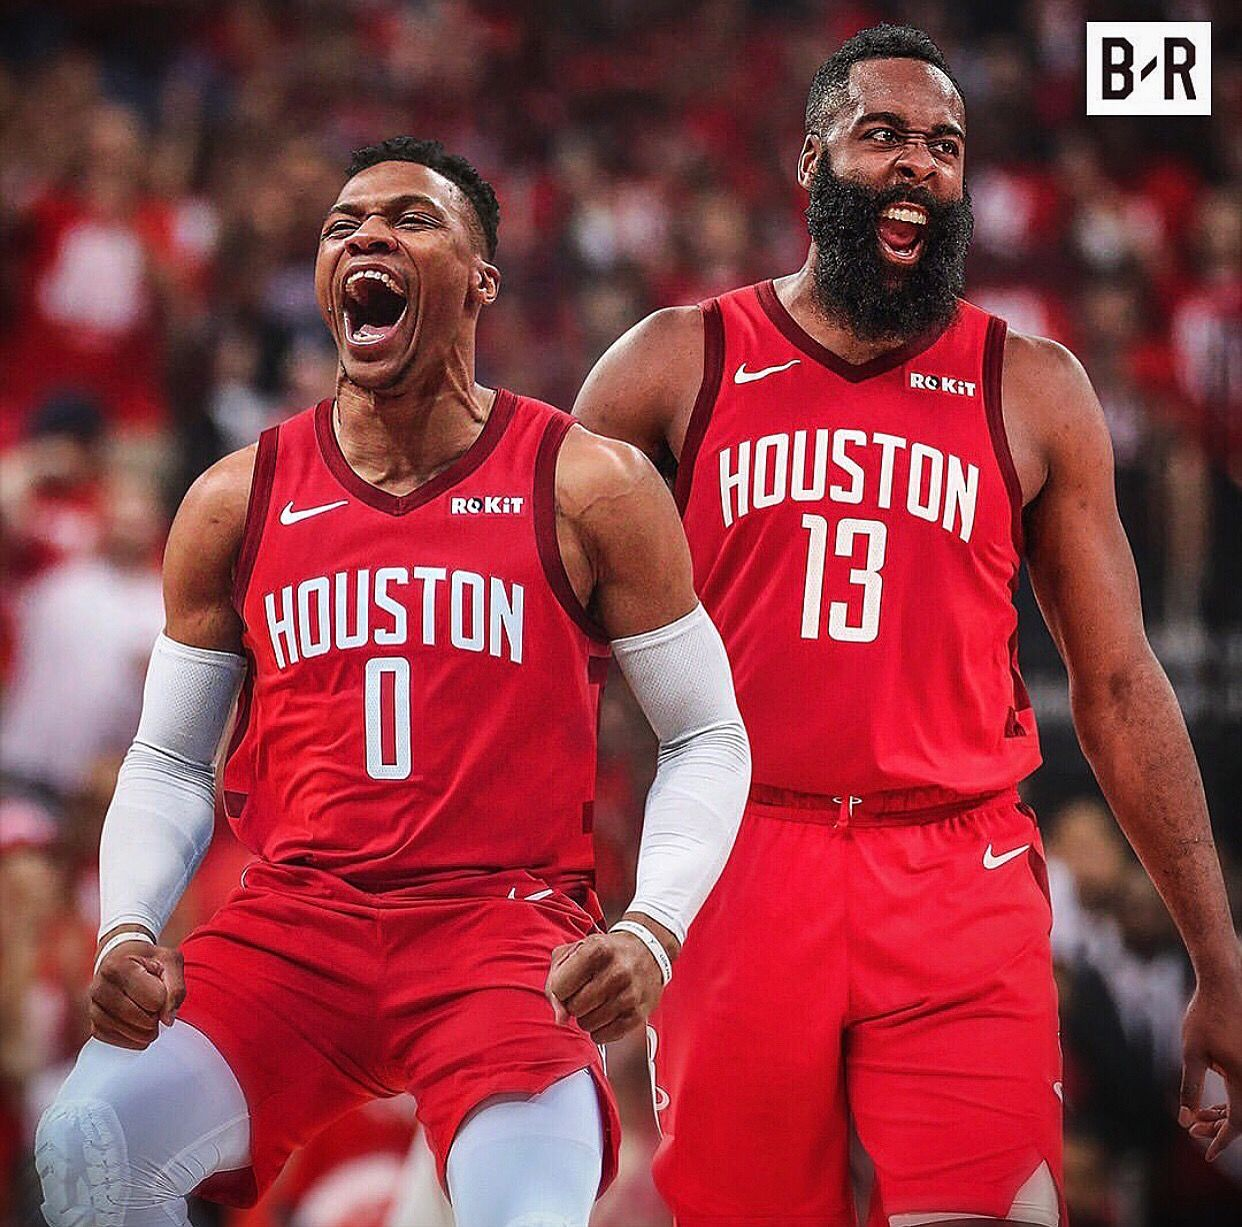 James harden by on Houston Rockets